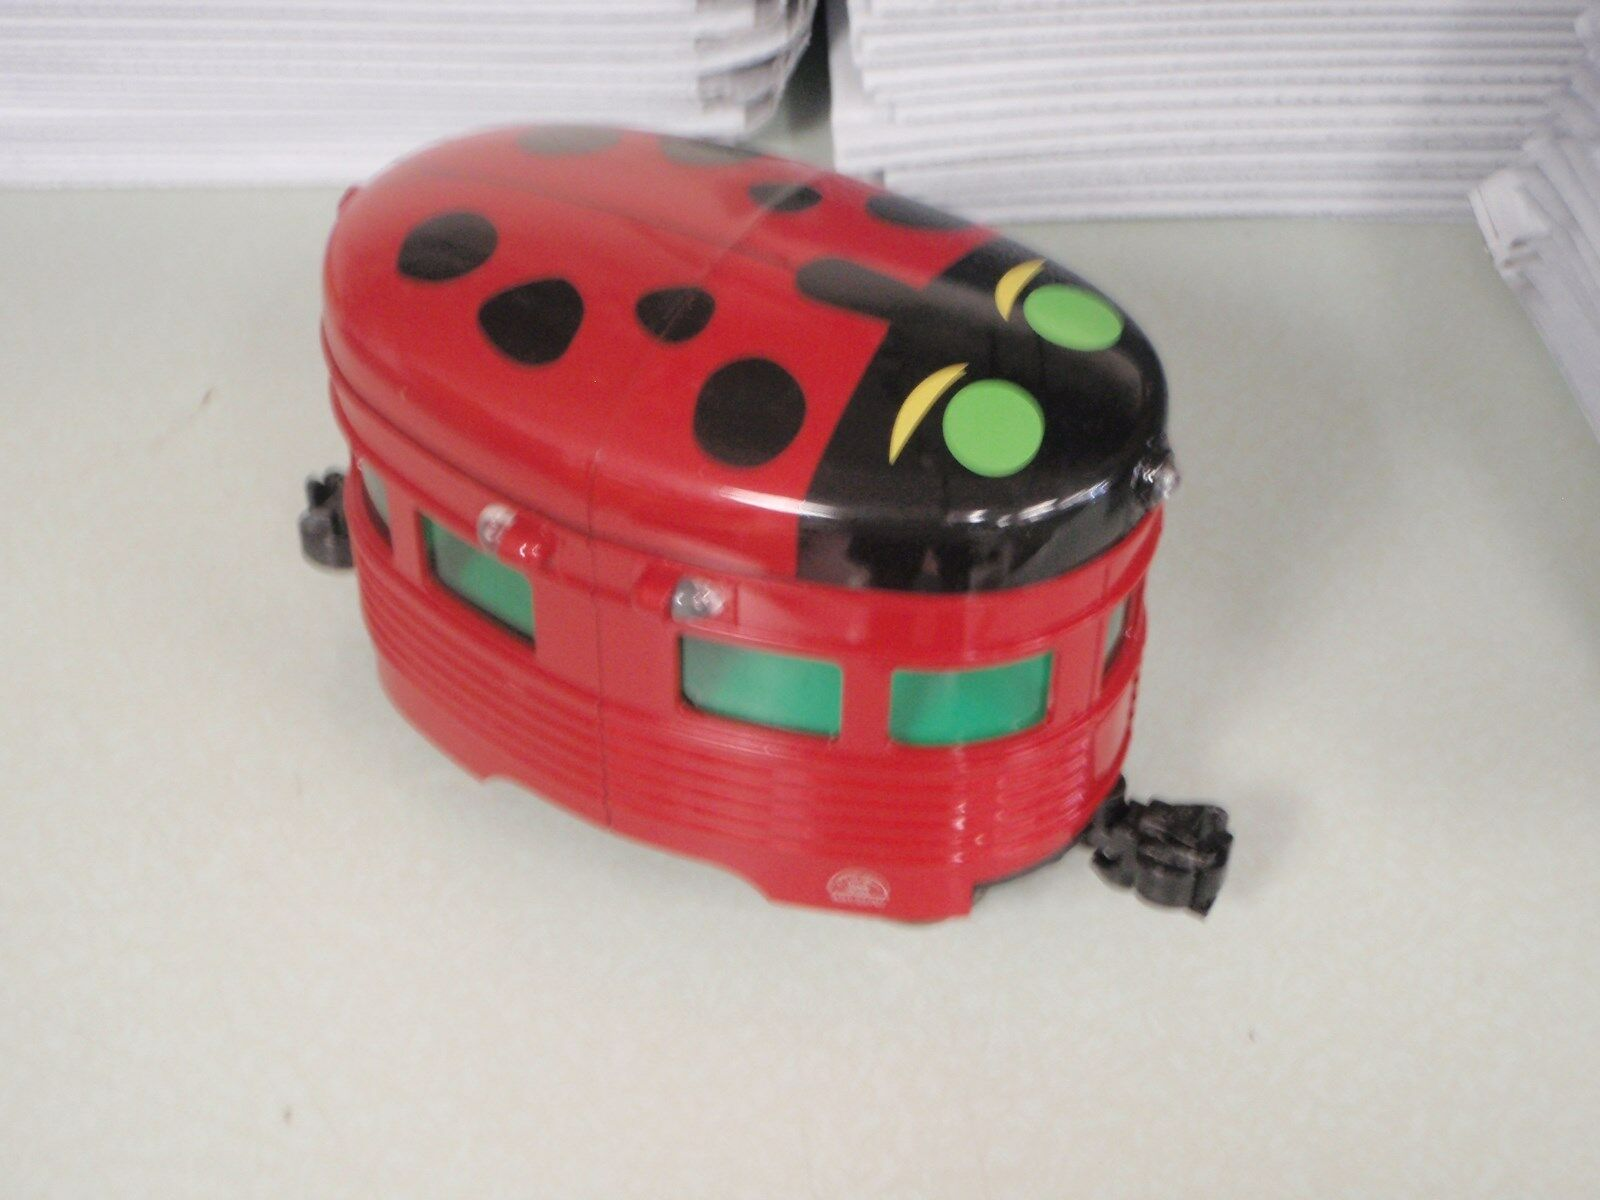 ARISTO CRAFT EGGLINER ART-22707 LADY BUG LIGHTED G SCALE 1;29 RED TRAIN